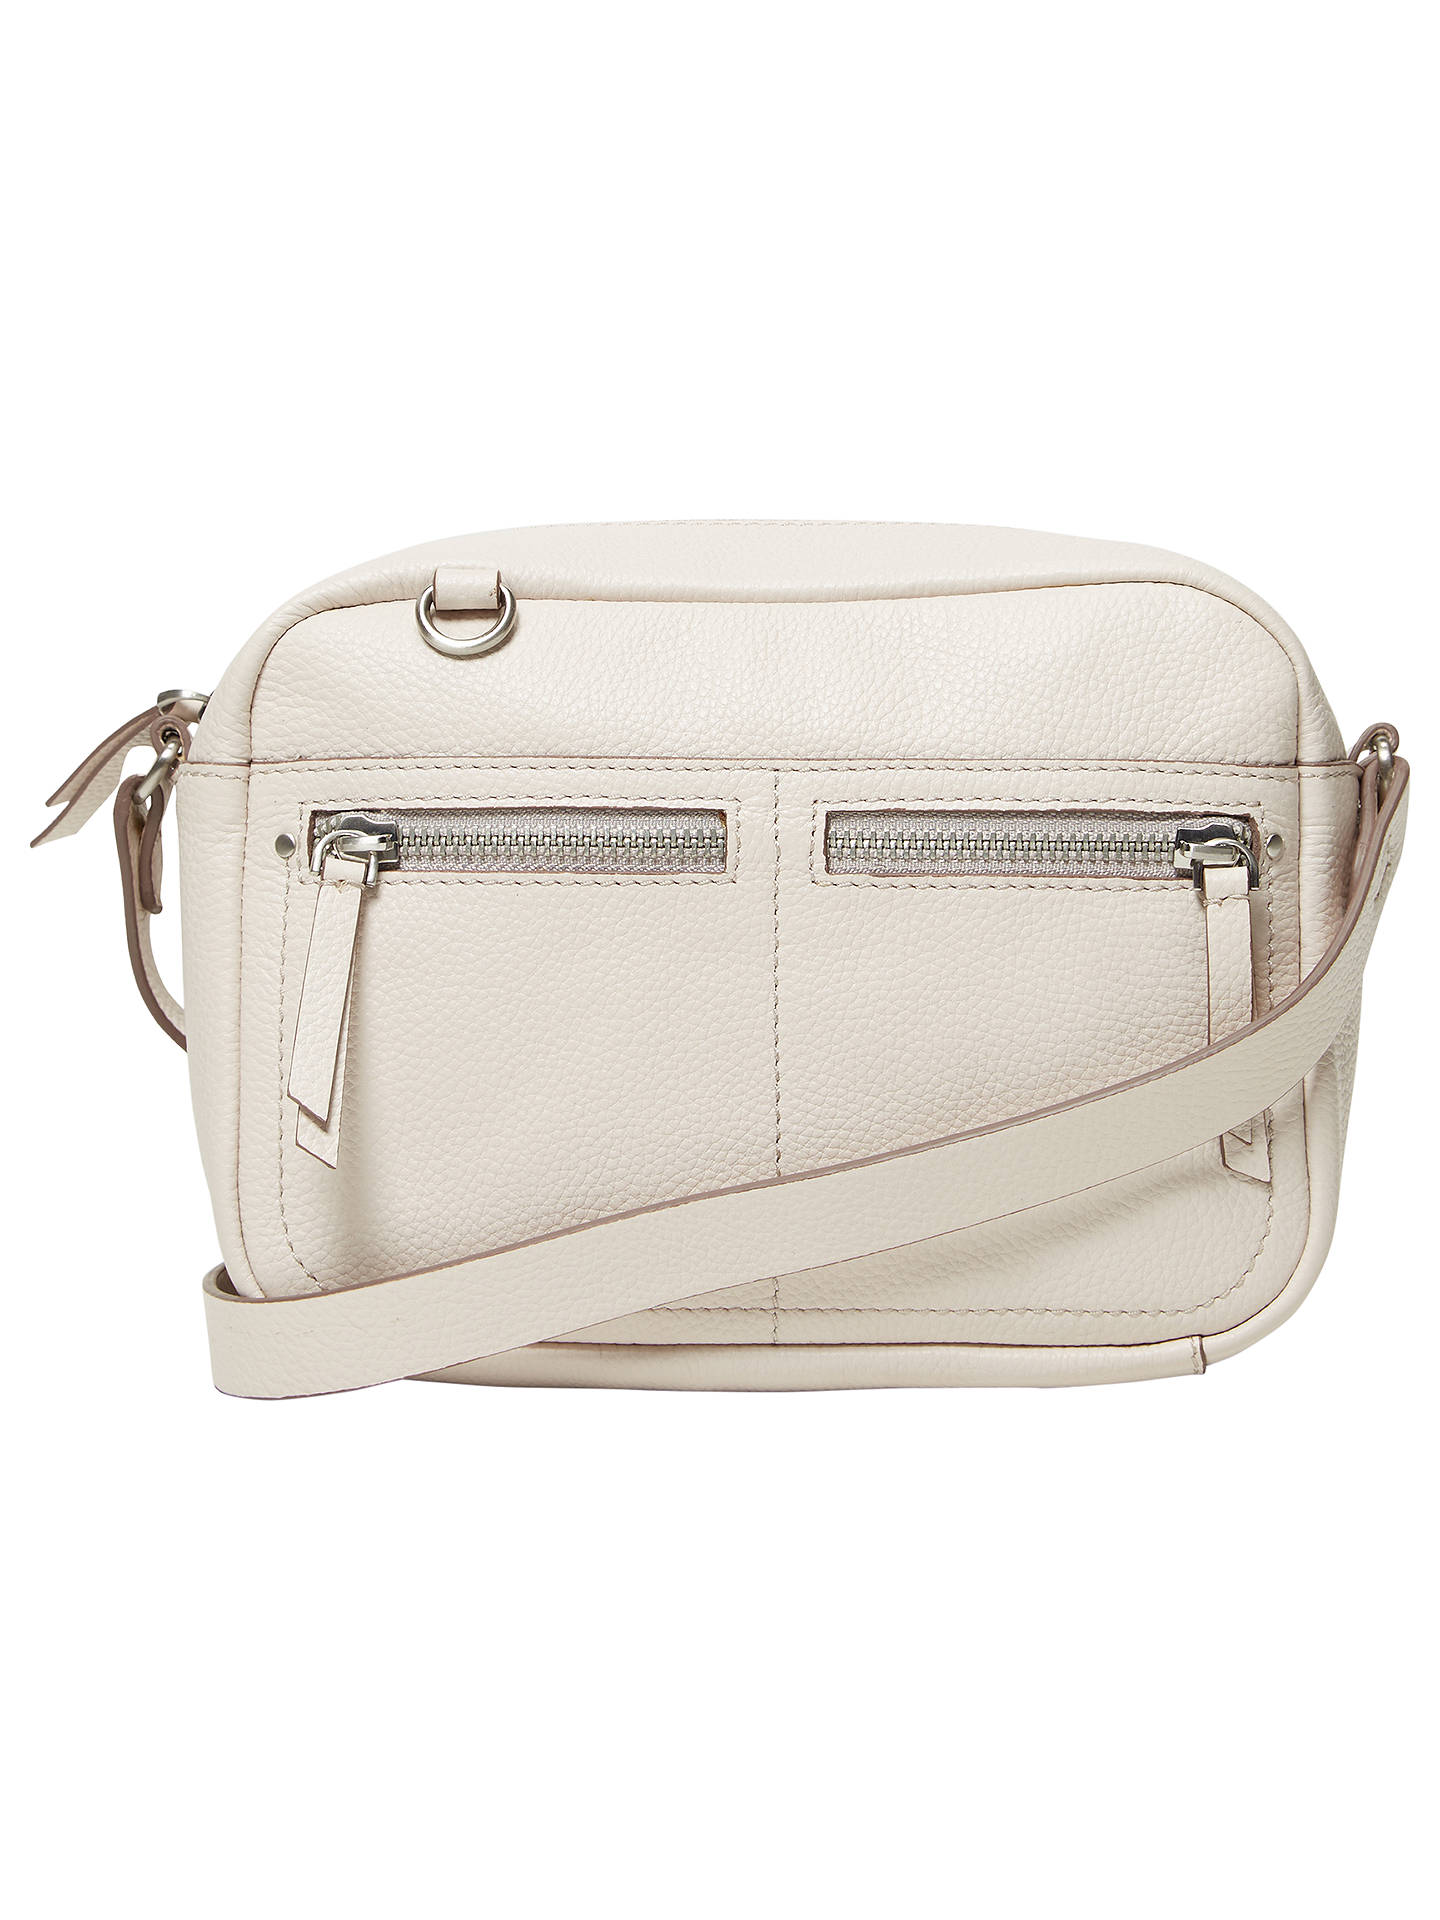 White Stuff Lily Leather Cross Body Bag Bone Online At Johnlewis